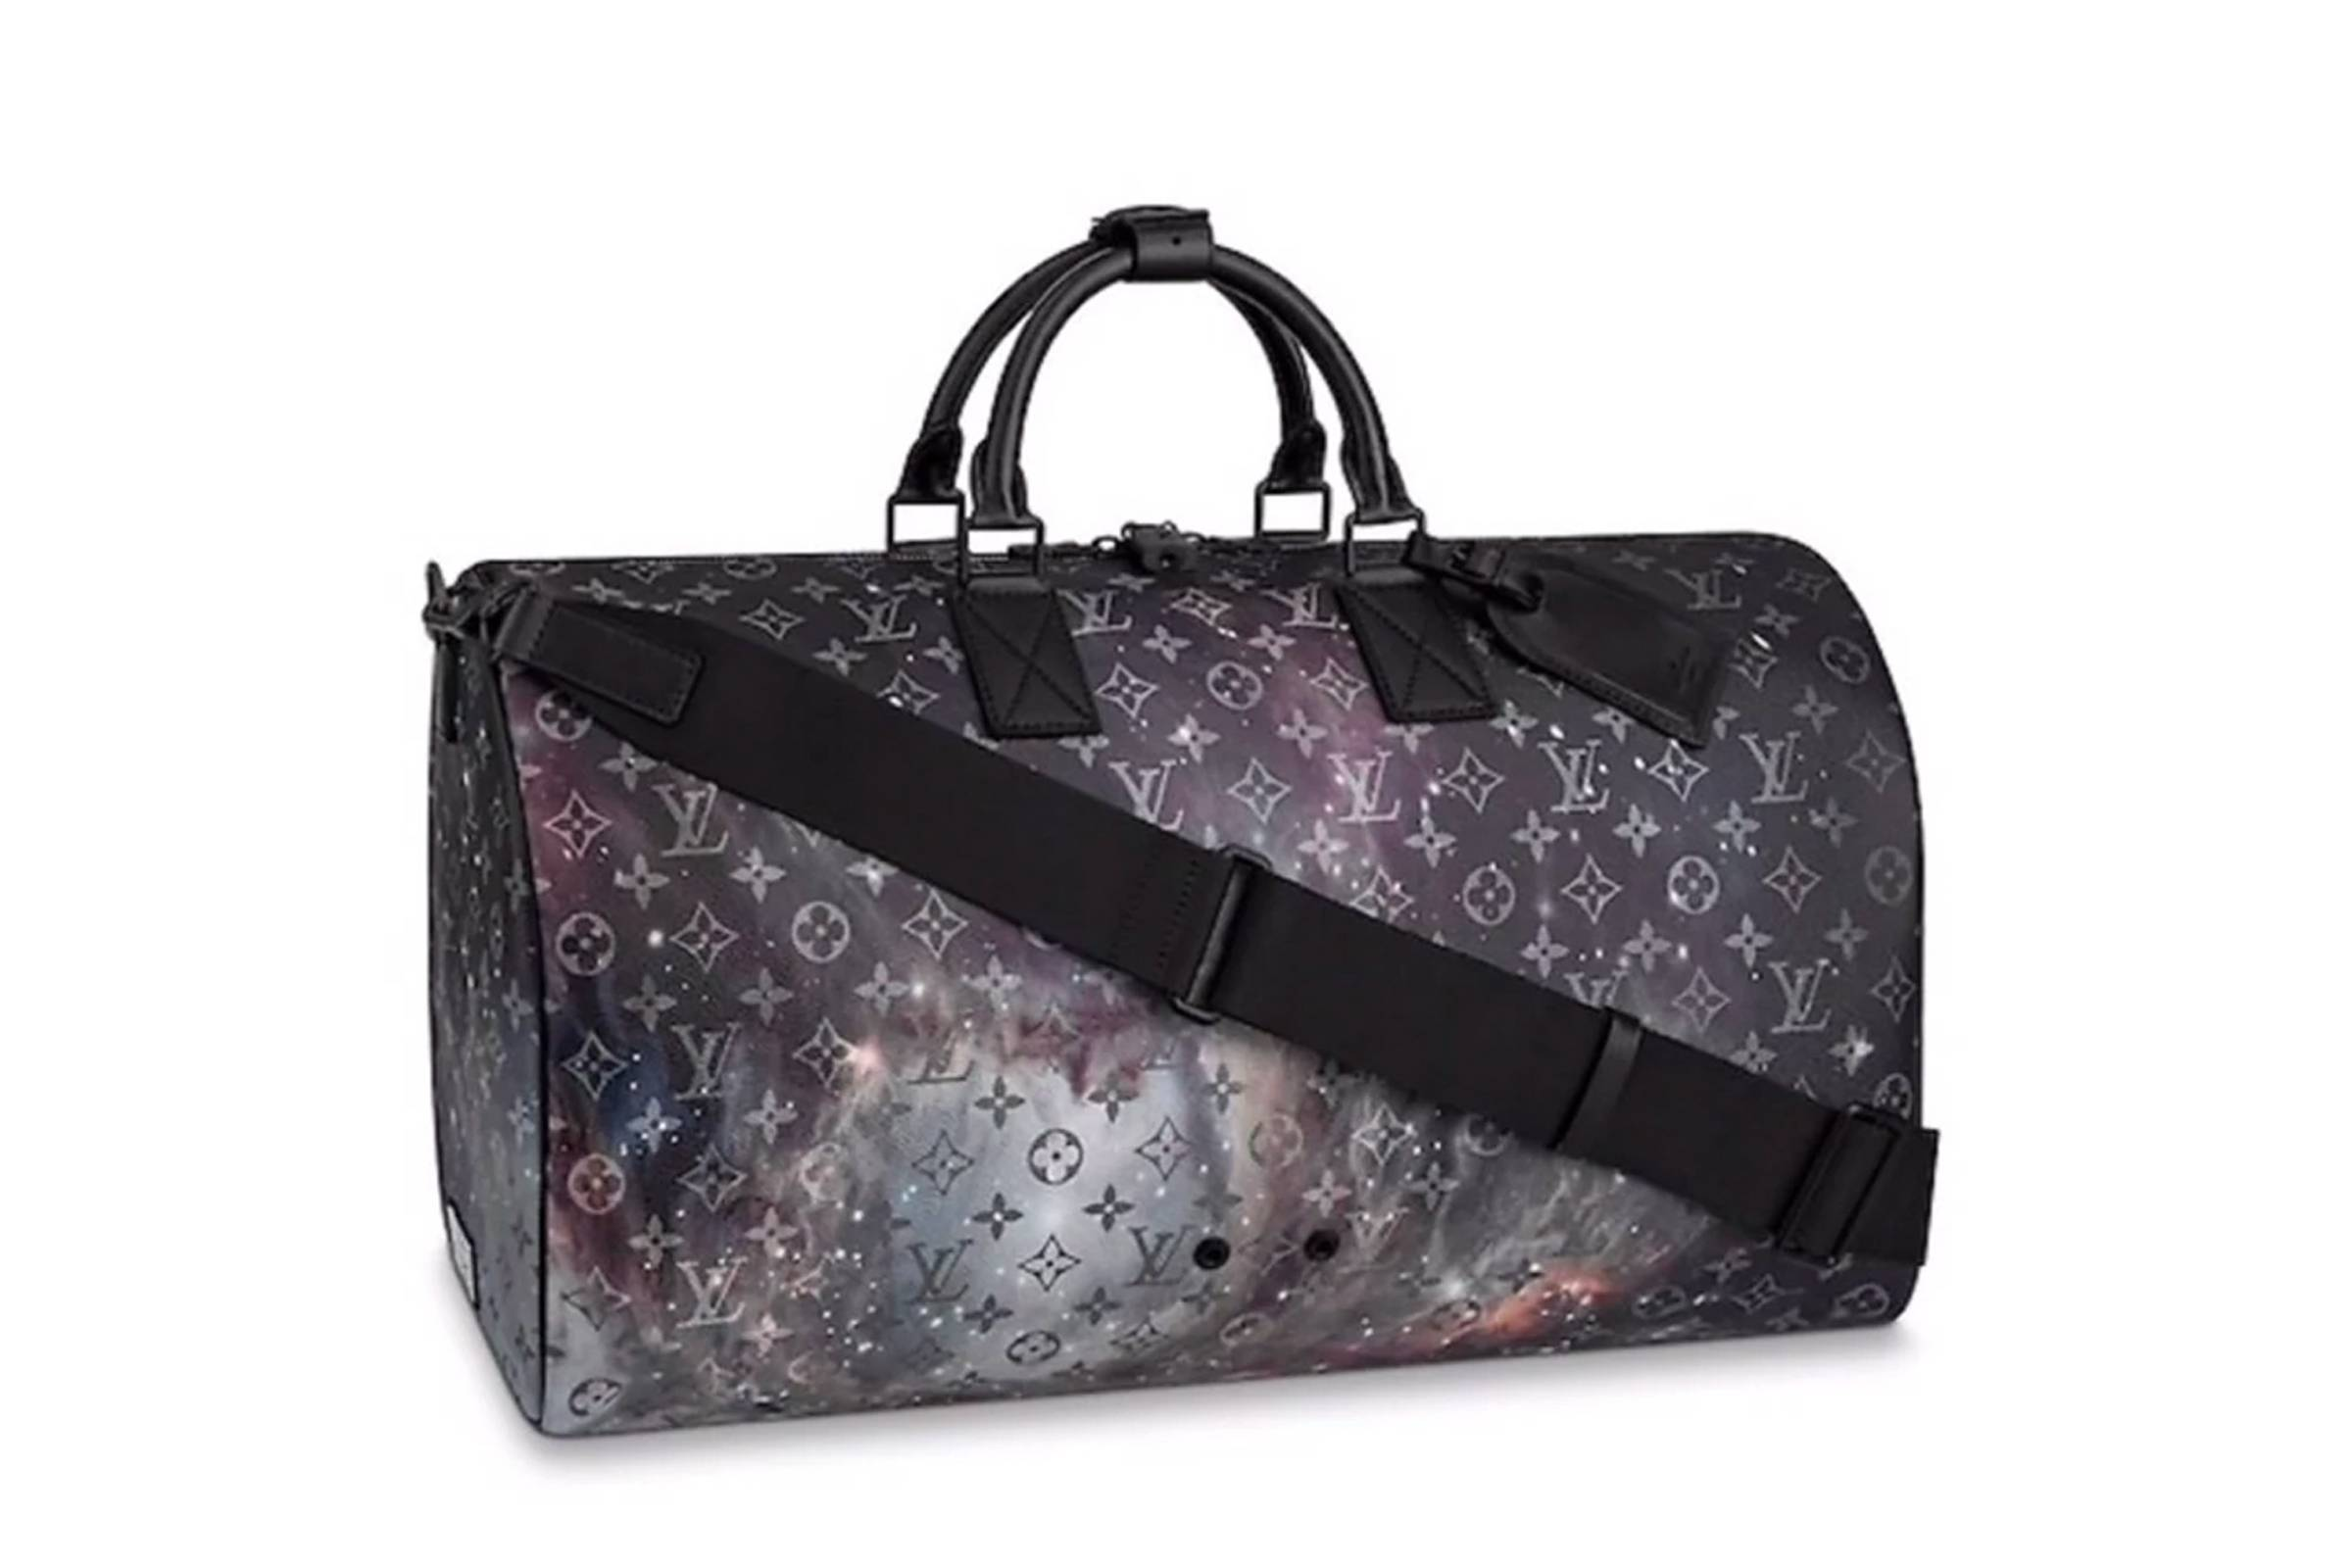 Louis Vuitton Keepall Bandouliere 50 Monogram Galaxy